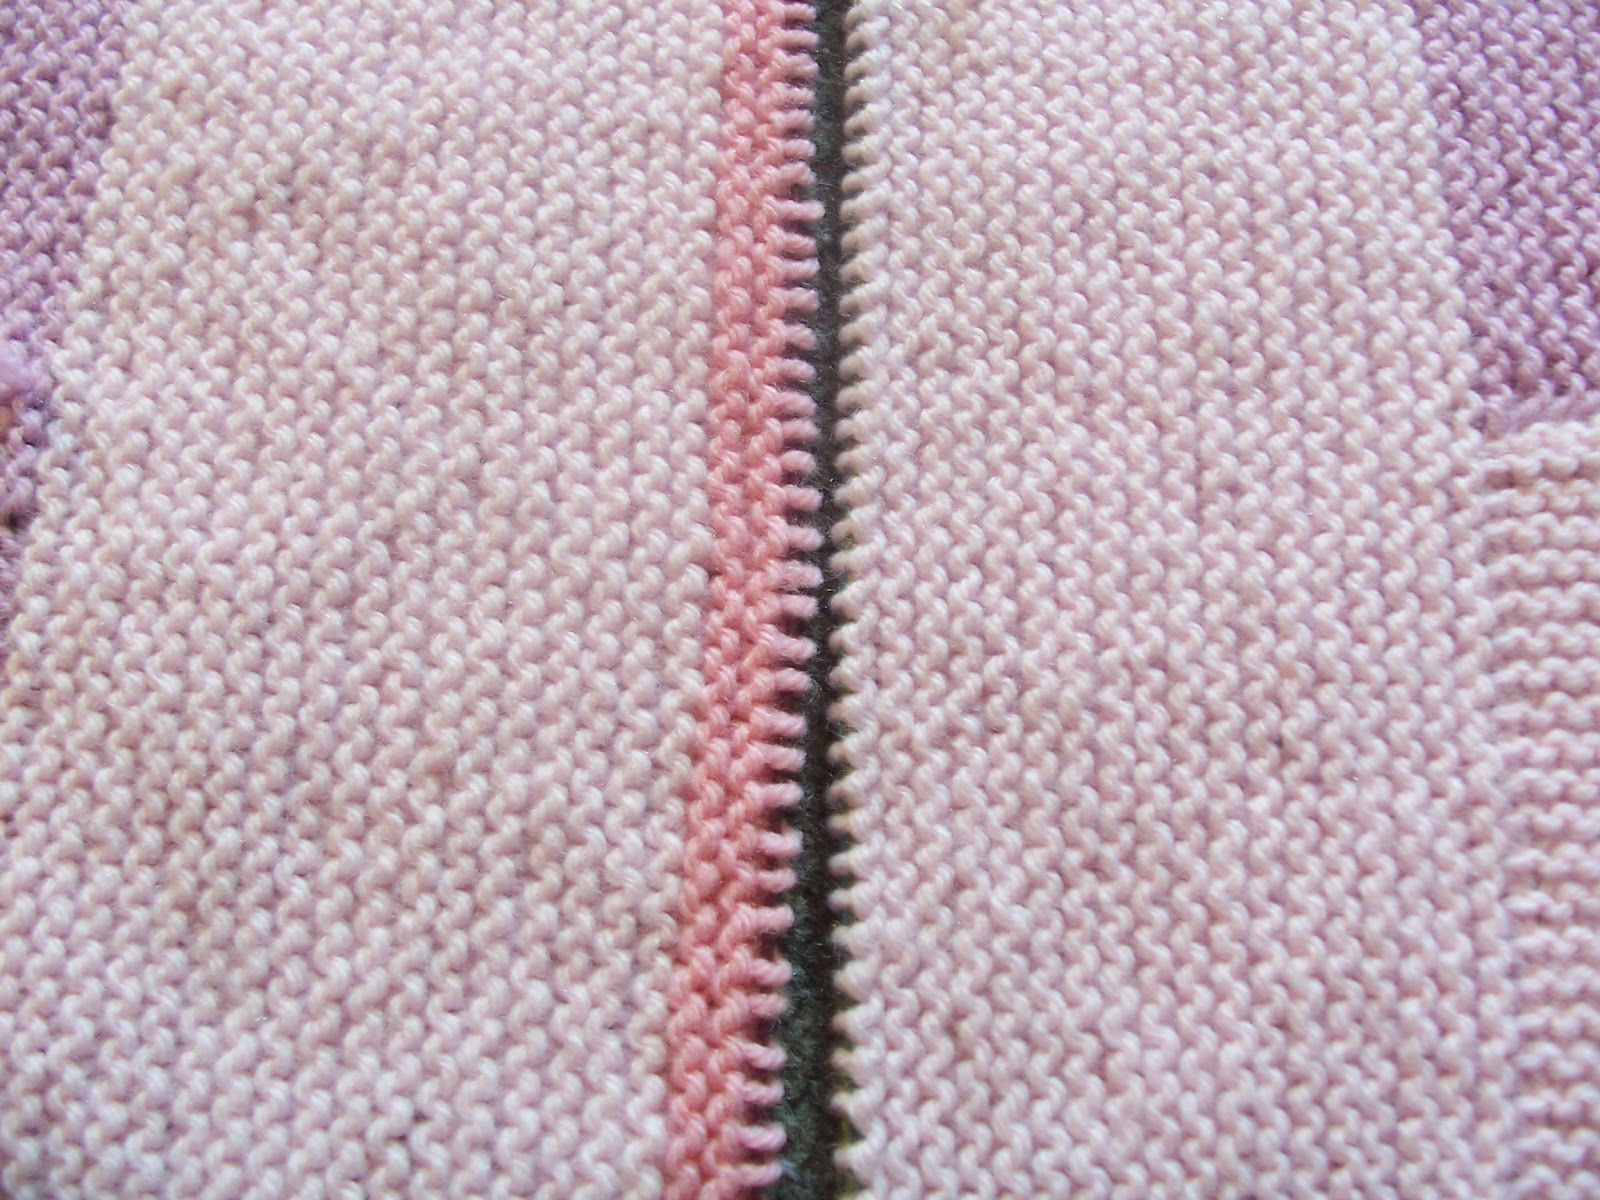 How To Graft Knitting Stitches Together : Life gets in the way of my Knitting!: Grafting Garter Stitch